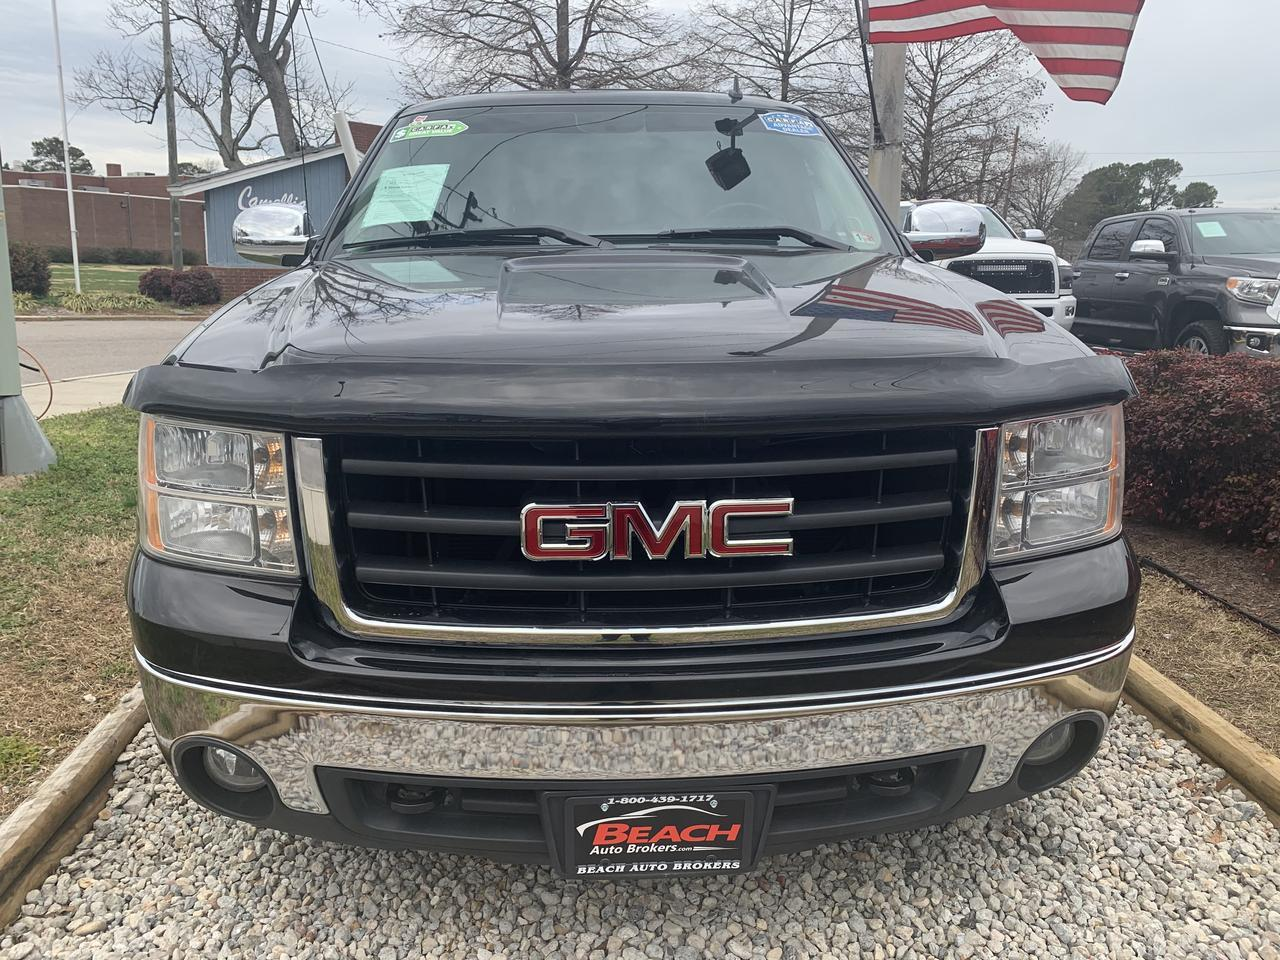 2007 GMC SIERRA 1500 SLT EXTENDED CAB 4X4, WARRANTY, LEATHER, SUNROOF, Z-71 OFF ROAD PKG, BLUETOOTH, LOW MILES! Norfolk VA